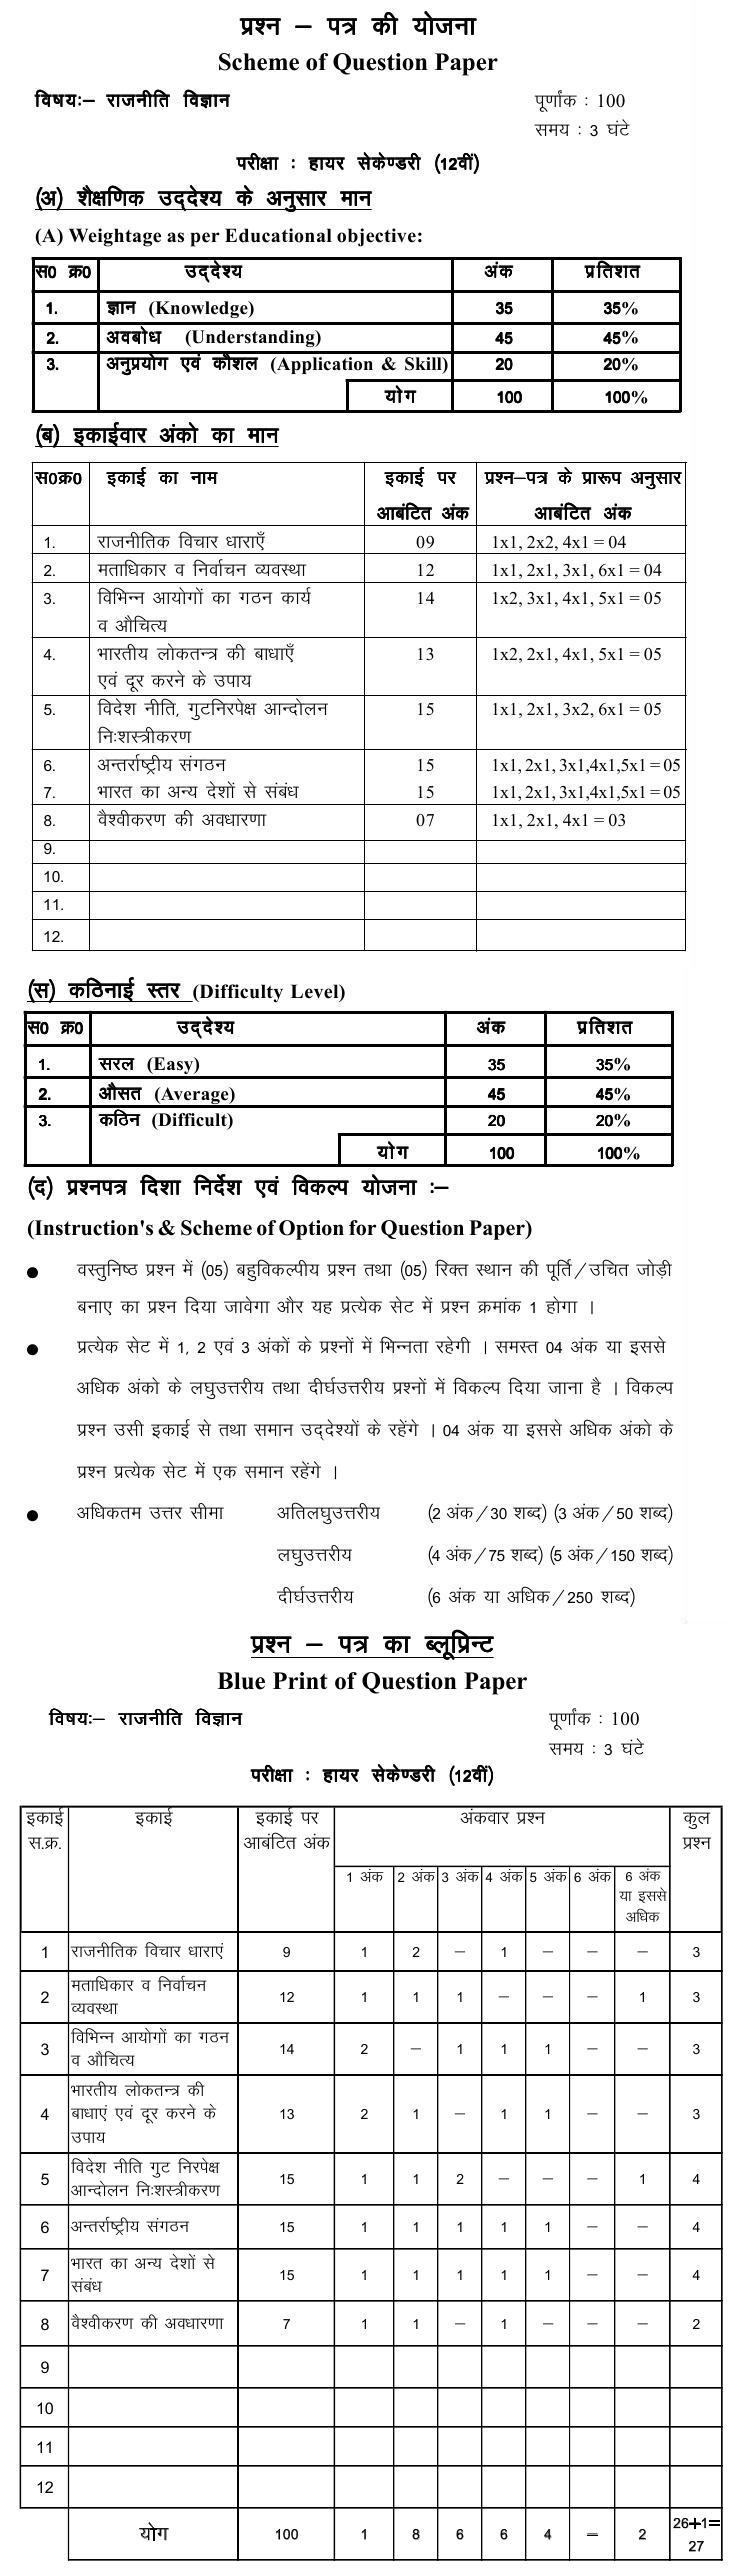 Chattisgarh Board Class 12 Scheme and Blue Print of Political Science